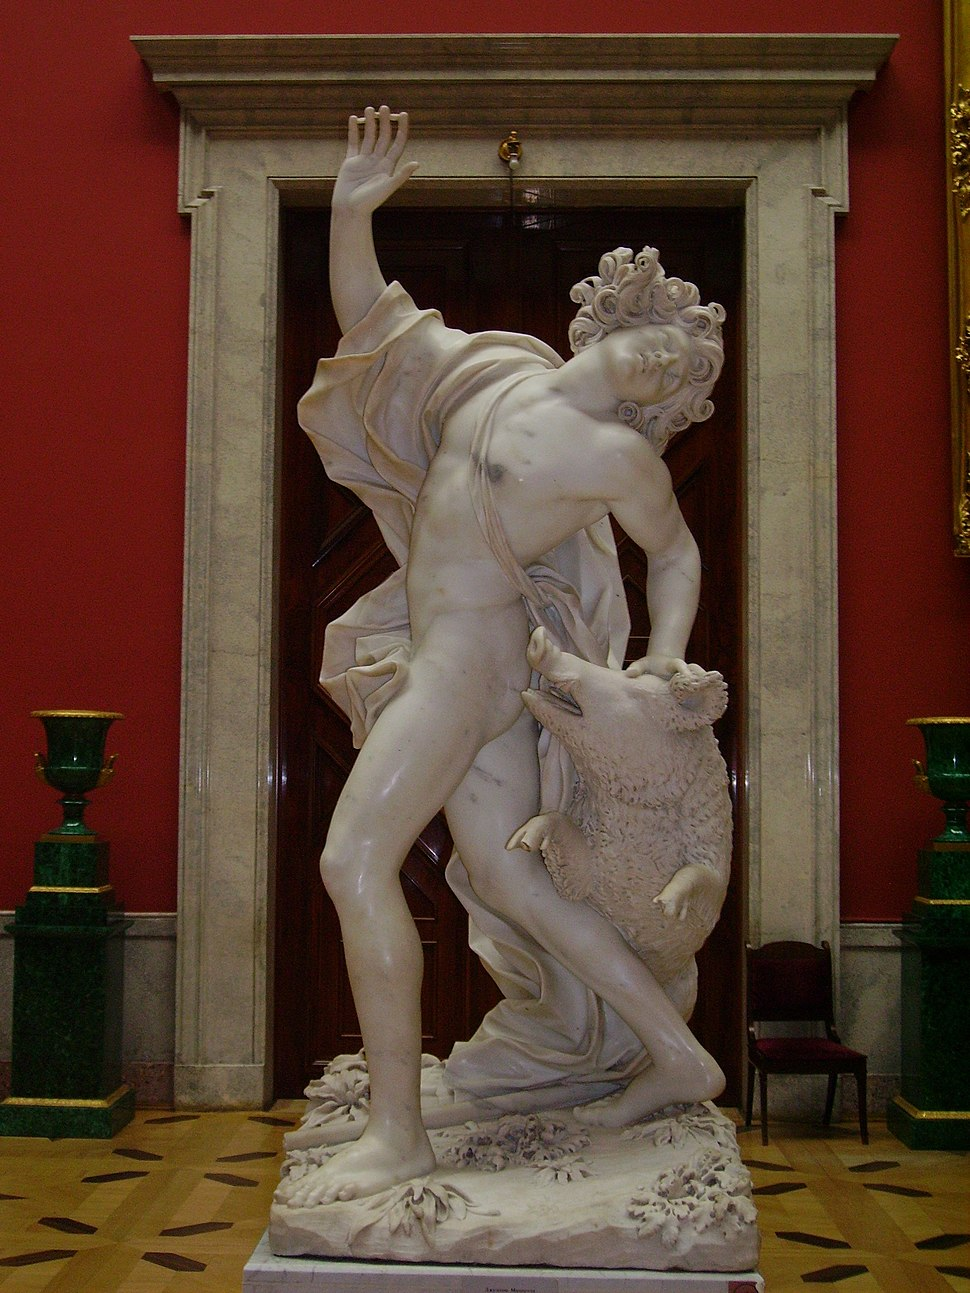 Giuseppe-Mazzuoli-The-Death-of-Adonis-hermitag